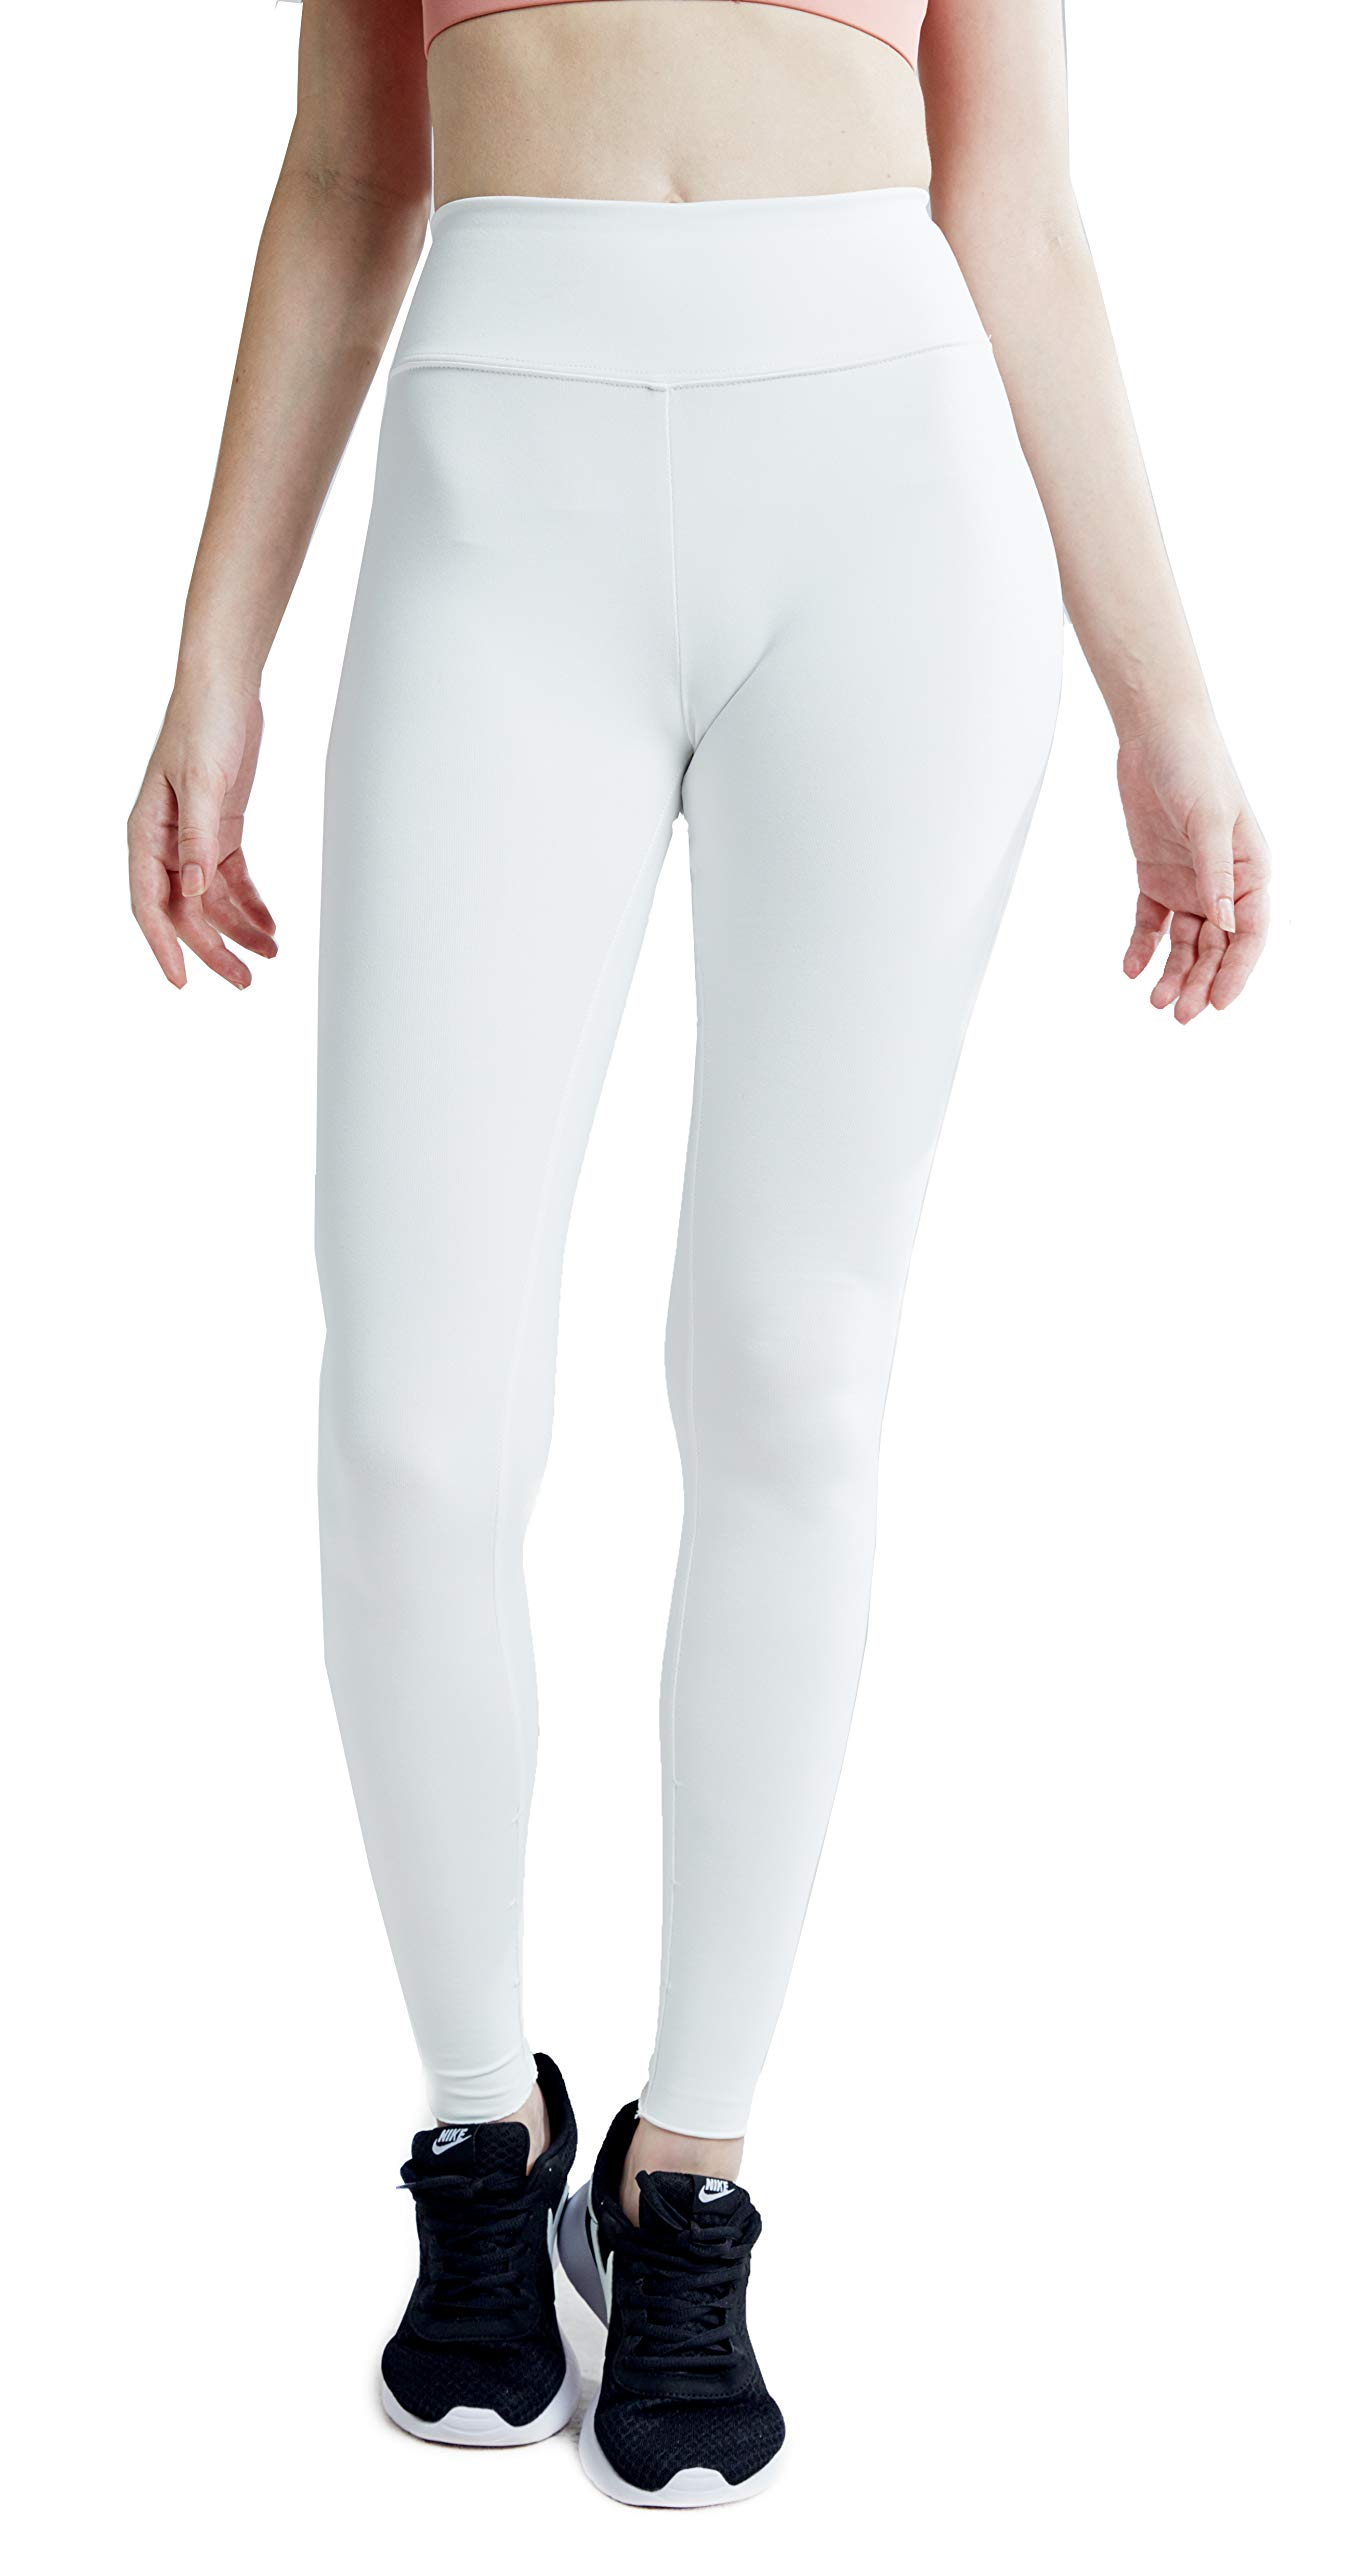 1b88ca8aeee1f Sunzel High Waisted Leggings, Women Soft Yoga Pants with Pocket for Gym  Workout Athletic product